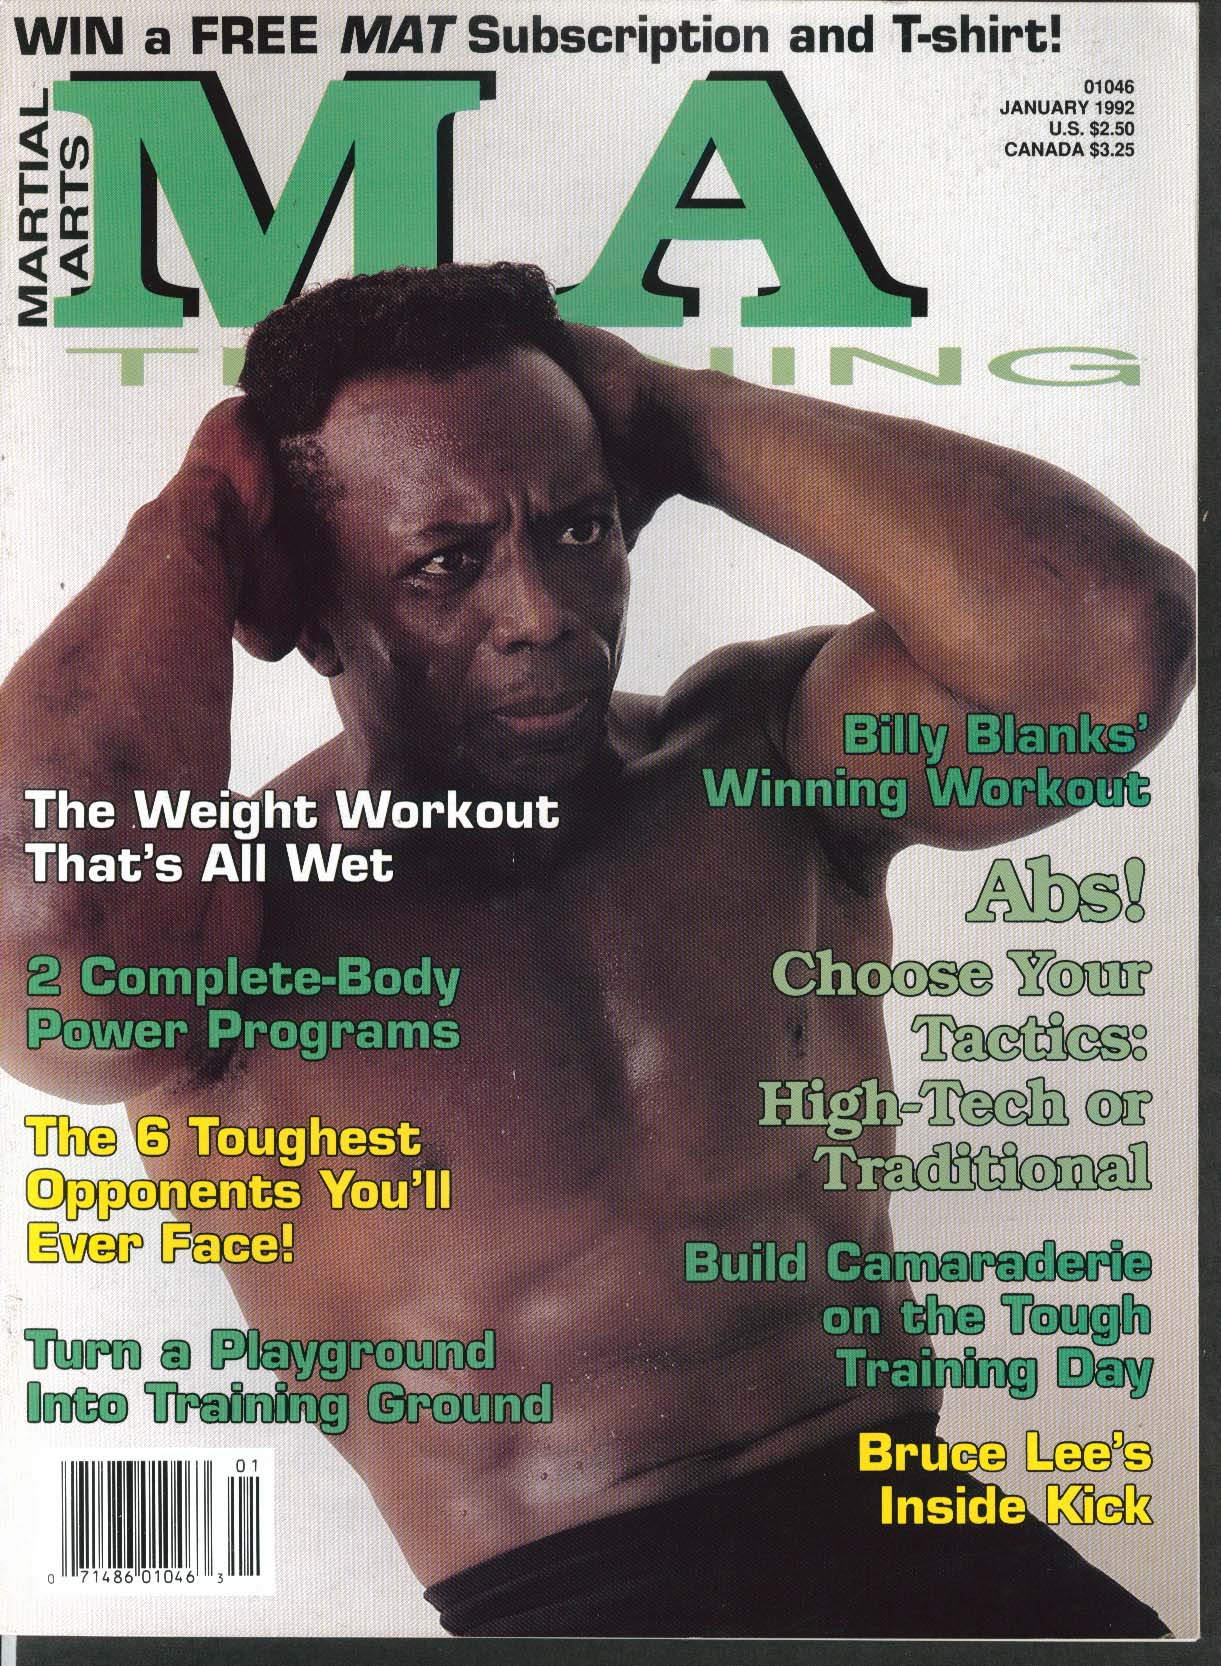 Image for MARTIAL ARTS MA TRAINING Billy Blanks Bruce Lee Inside Kick T-Shirt Offer 1 1992